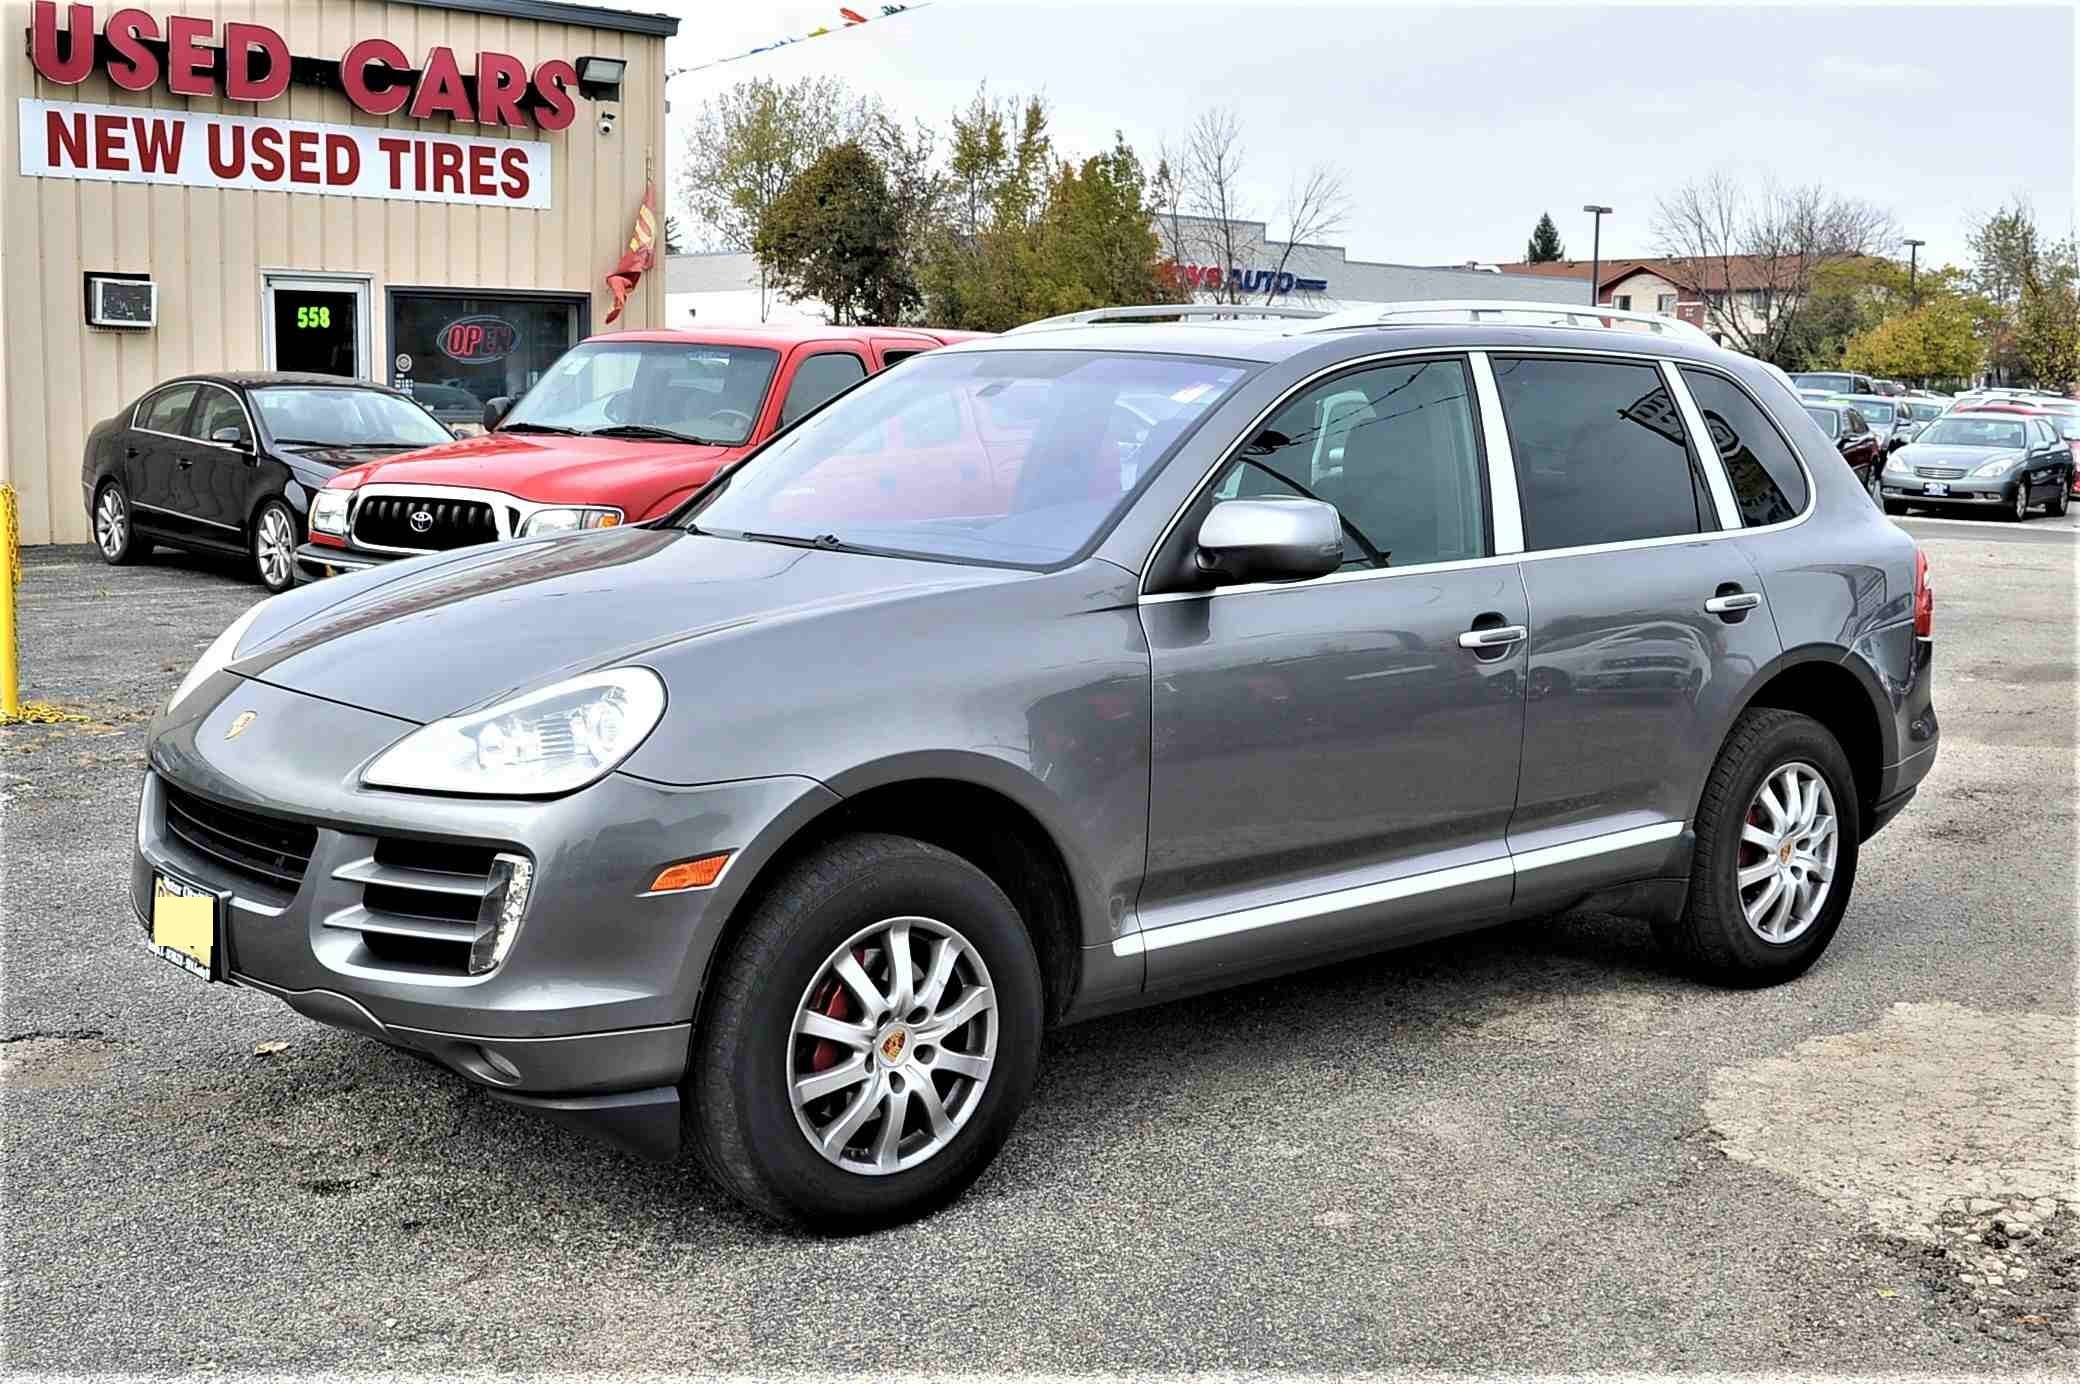 2009 Porsche Cayenne Gray Used SUV Sale Antioch Zion Waukegan Lake County Illinois